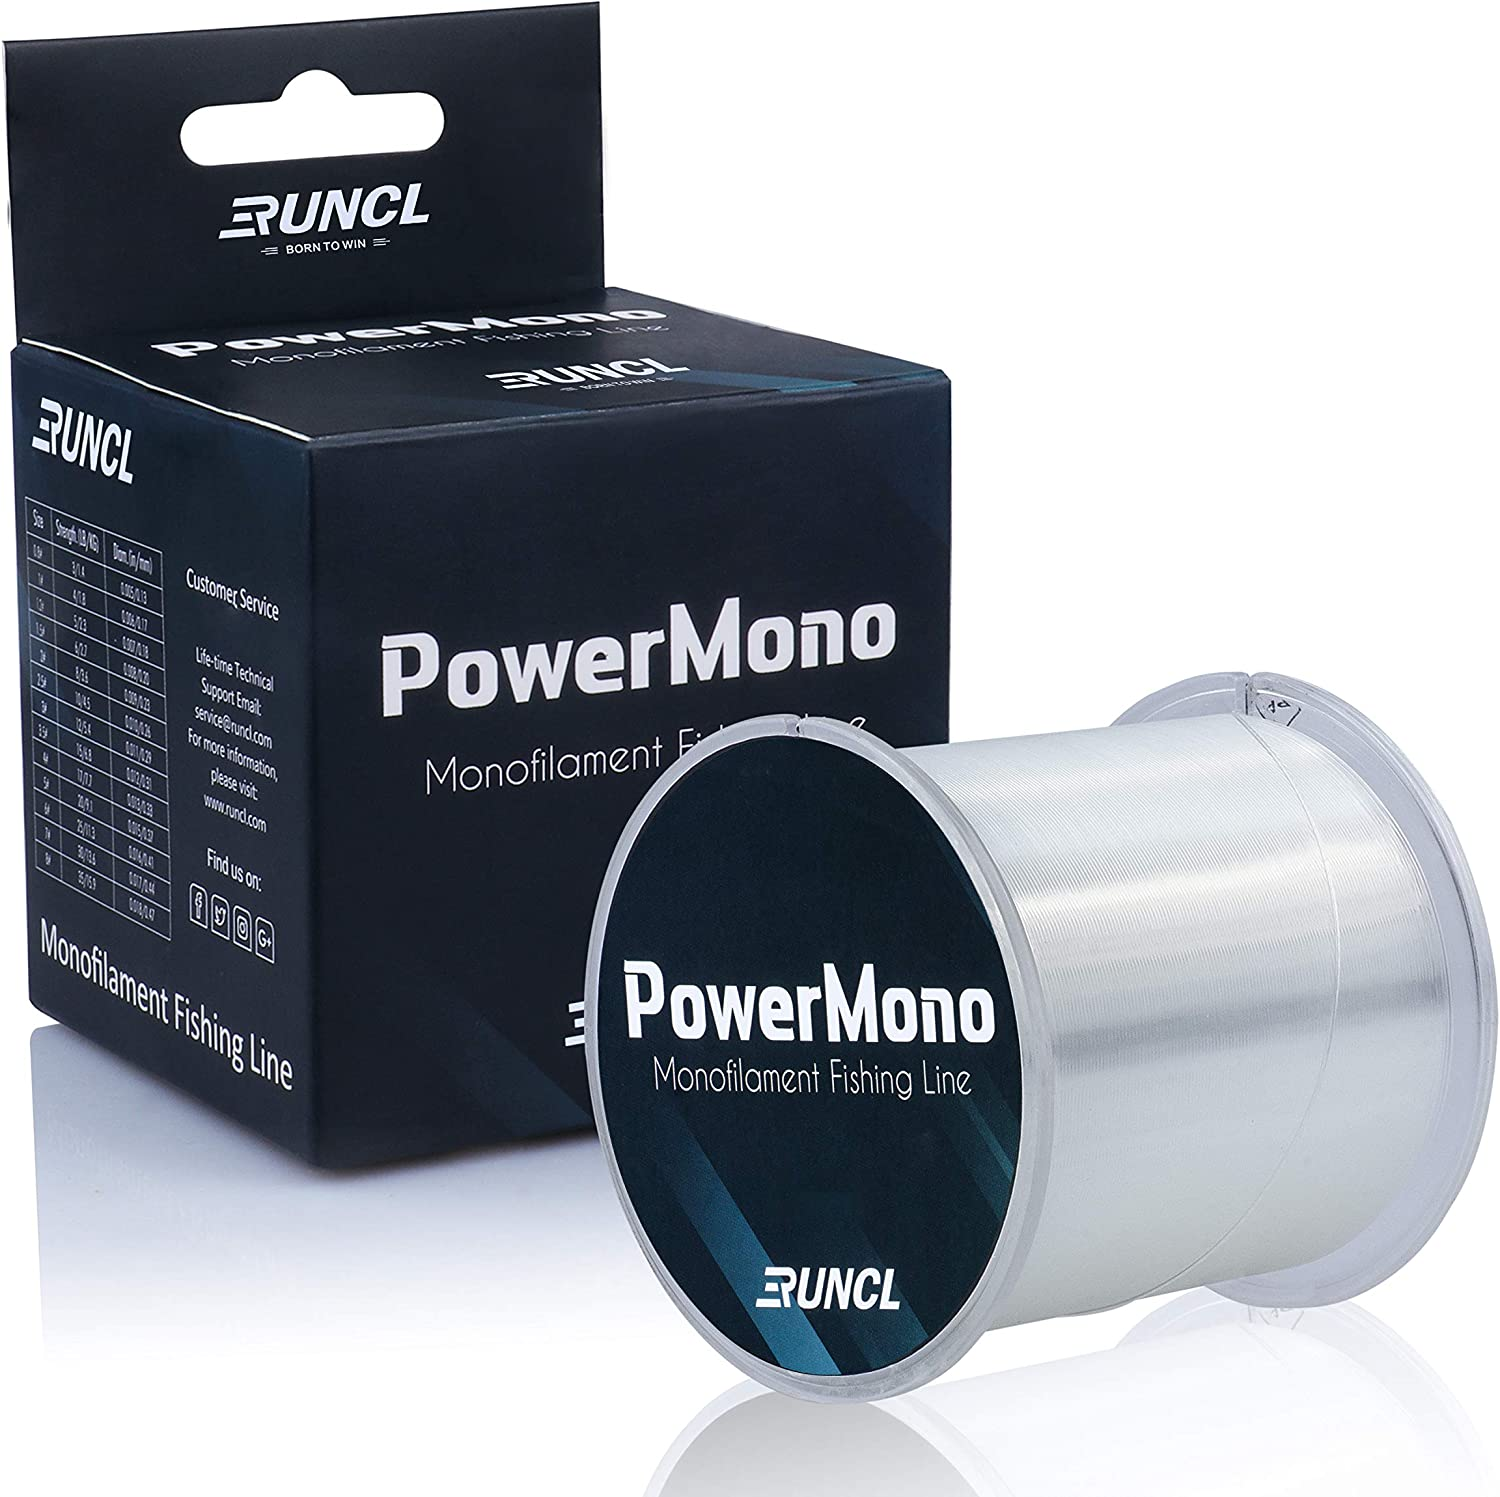 RUNCL PowerMono All stores are sold Fishing Manufacturer direct delivery Line 300 500 Monofilament